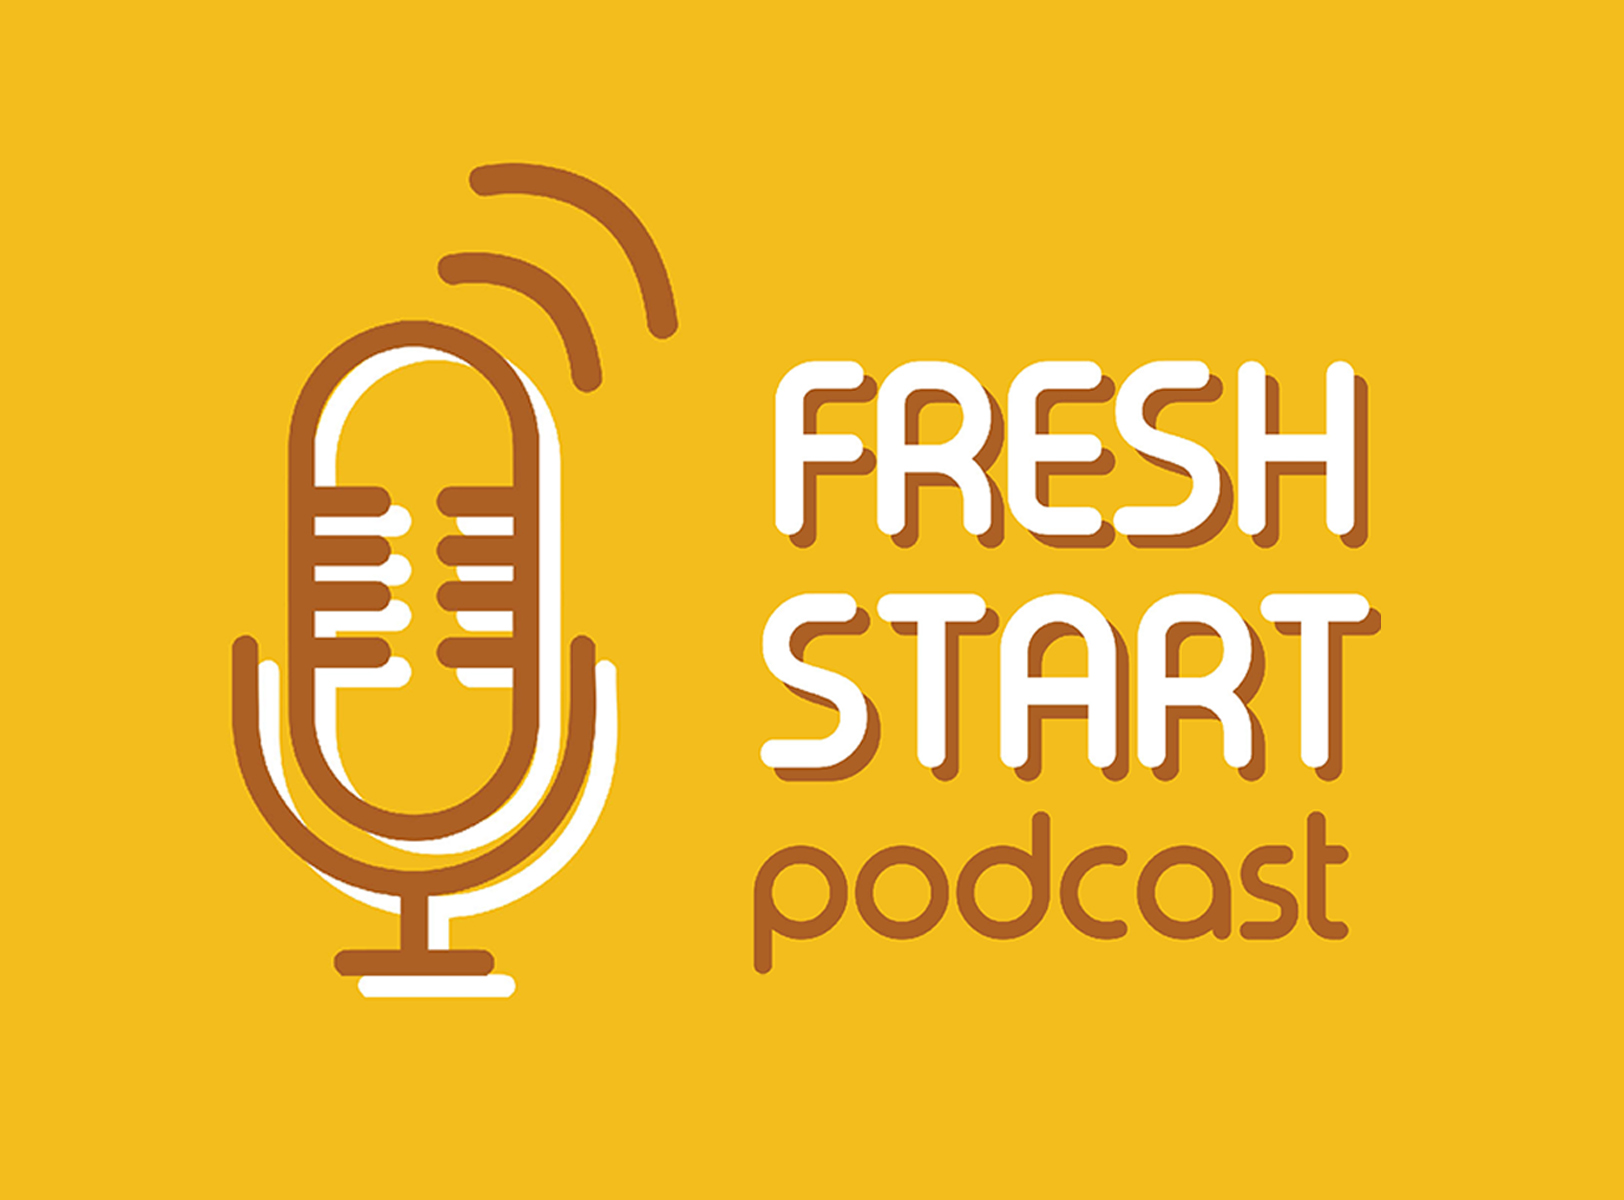 Fresh Start: Podcast News (1/17/2019 Thu.)